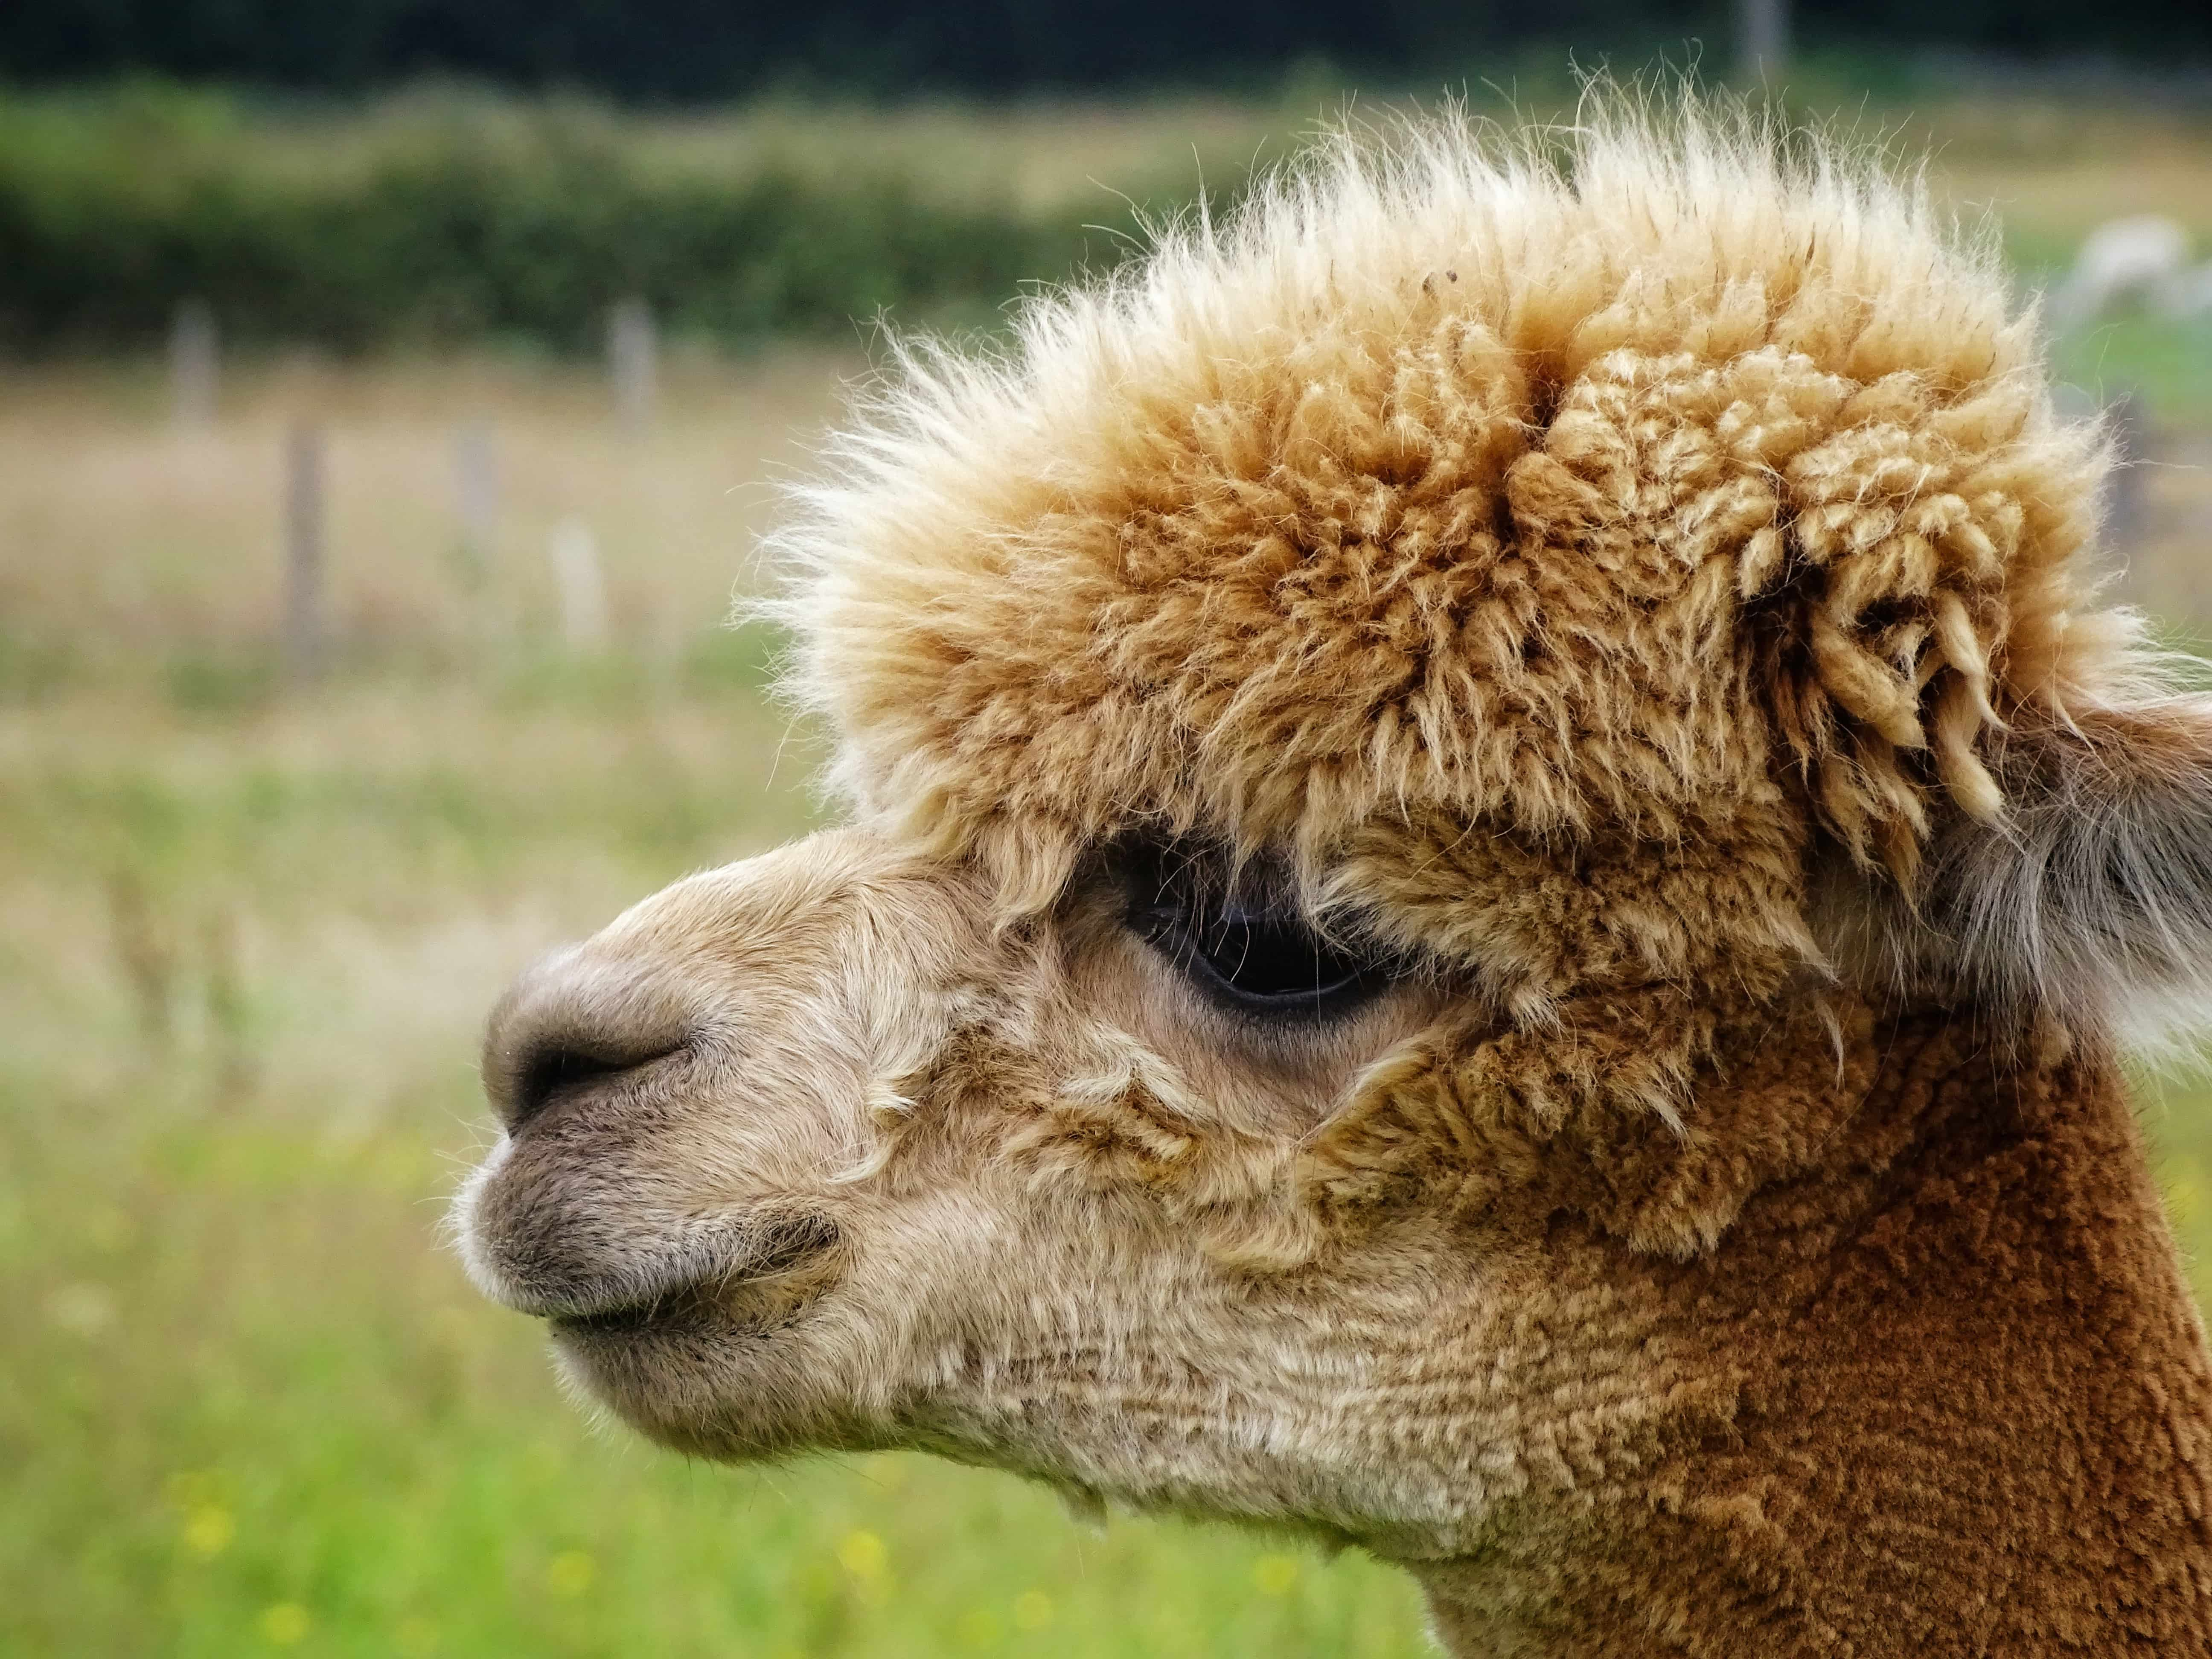 How do you tell the difference between an Alpaca and a Llama? By Laura Rowan - Derby Days Out